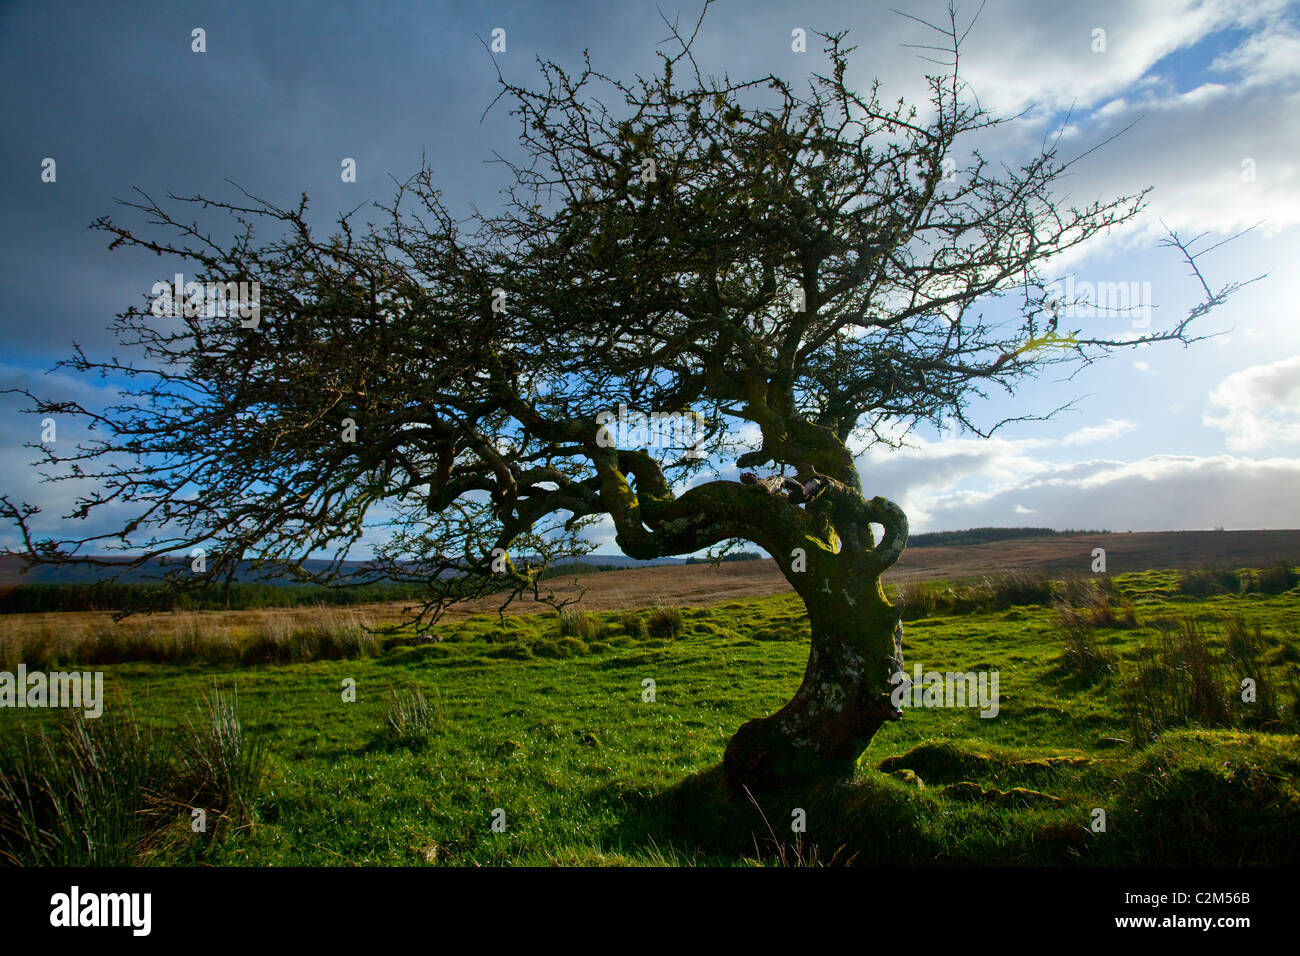 Old twisted hawthorn tree (Crataegus), Tullyskeherny, Manorhamilton, County Leitrim, Ireland. - Stock Image